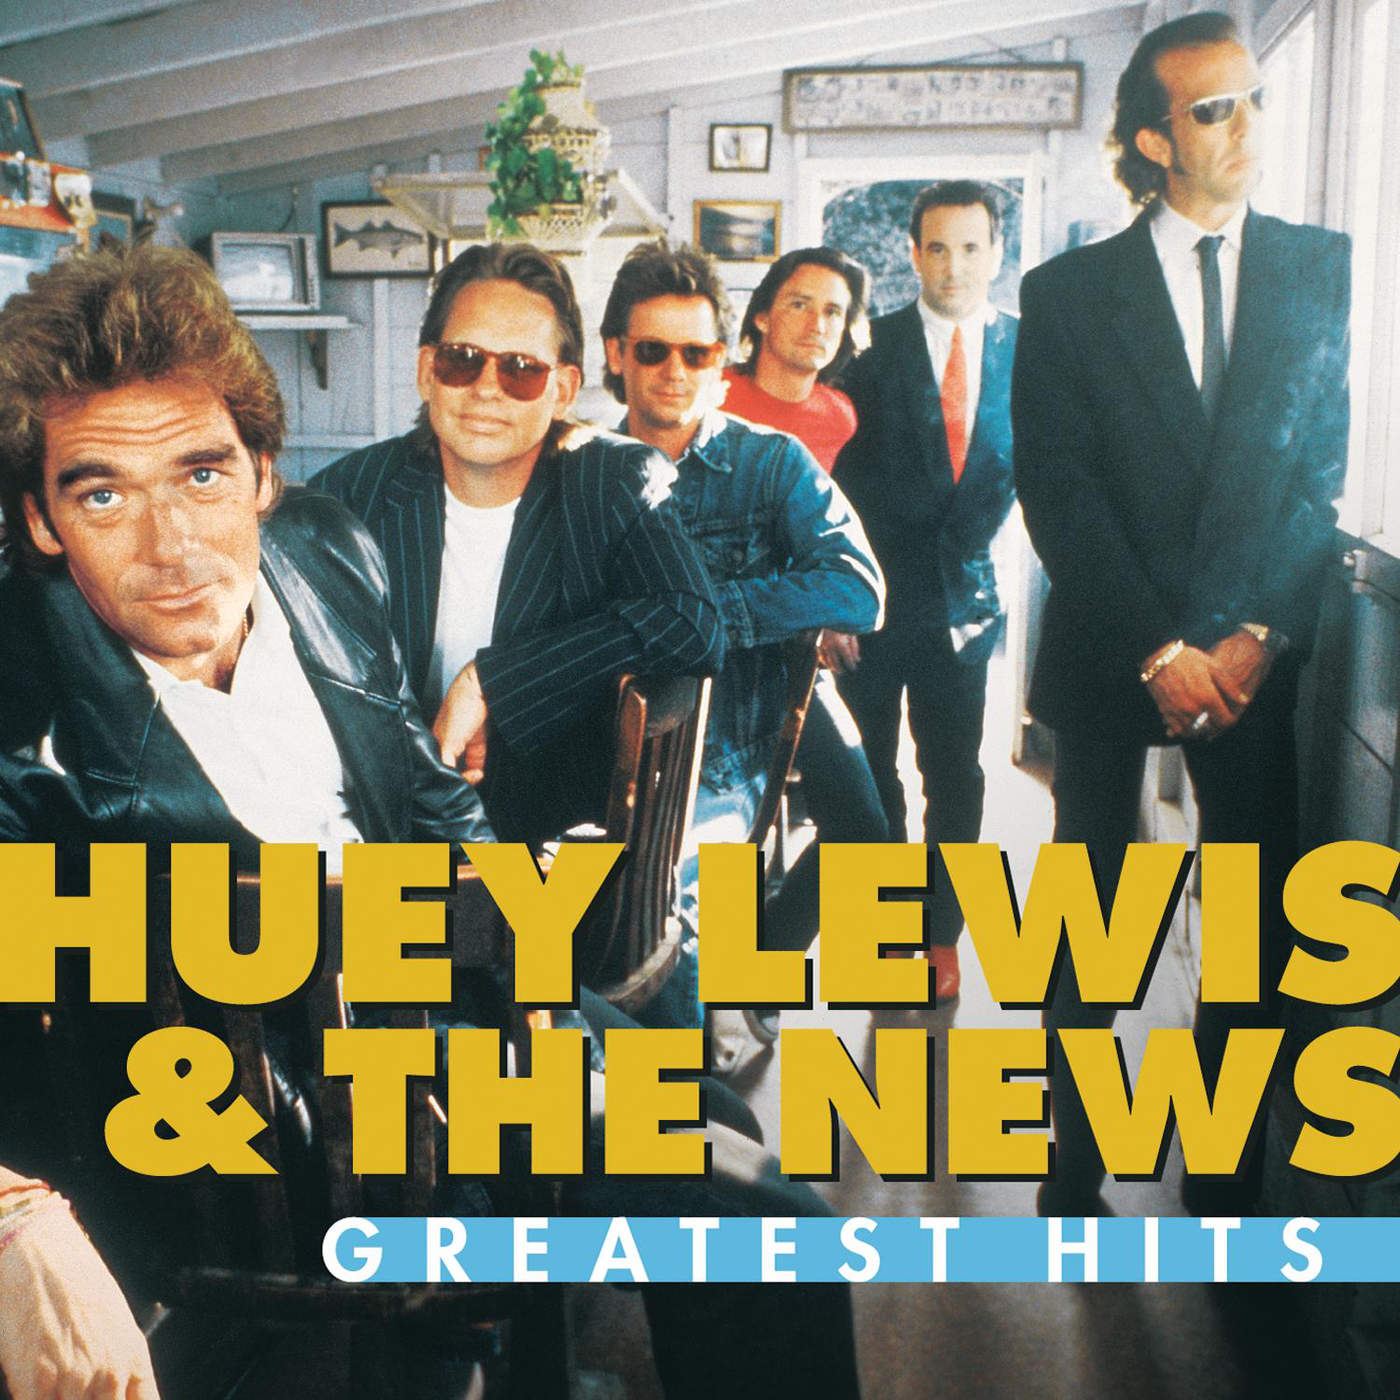 The Power of Love by Huey Lewis & The News